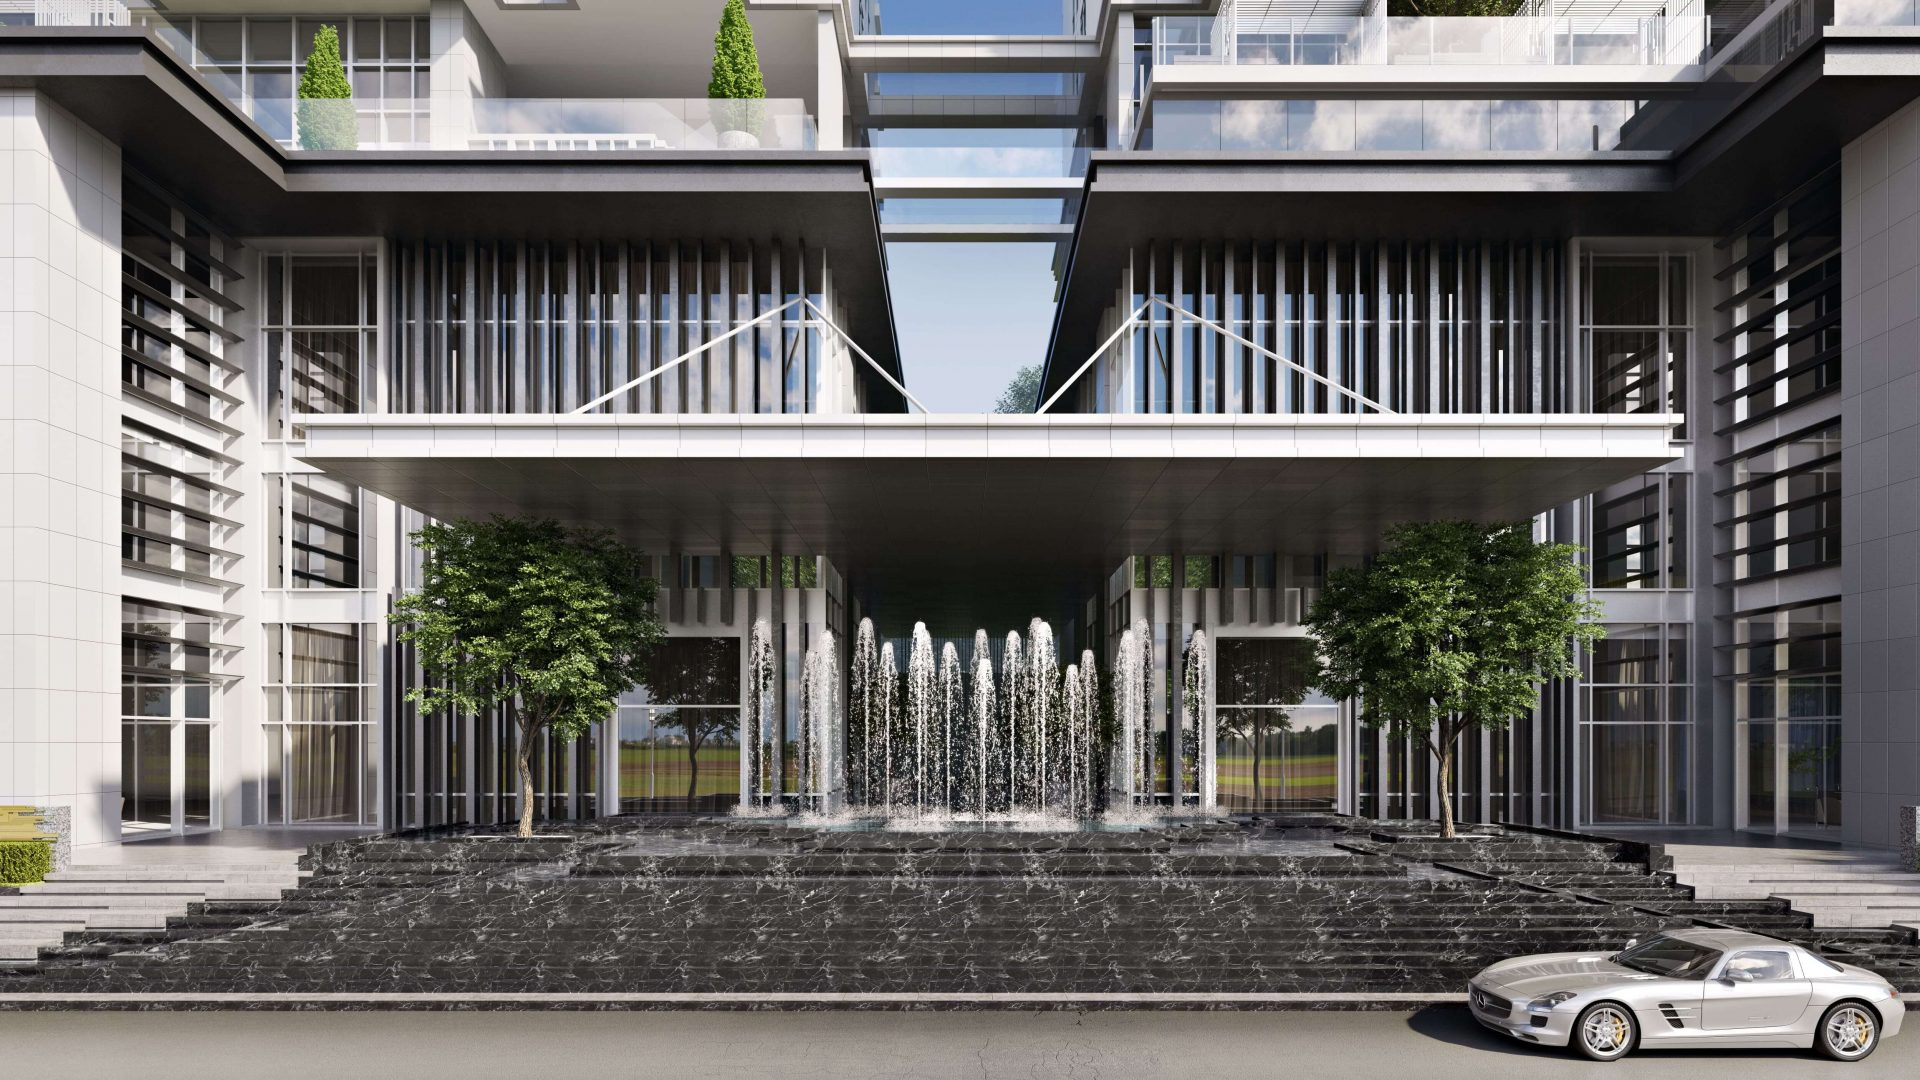 Photorealistic 3D Renderings for Exterior Design